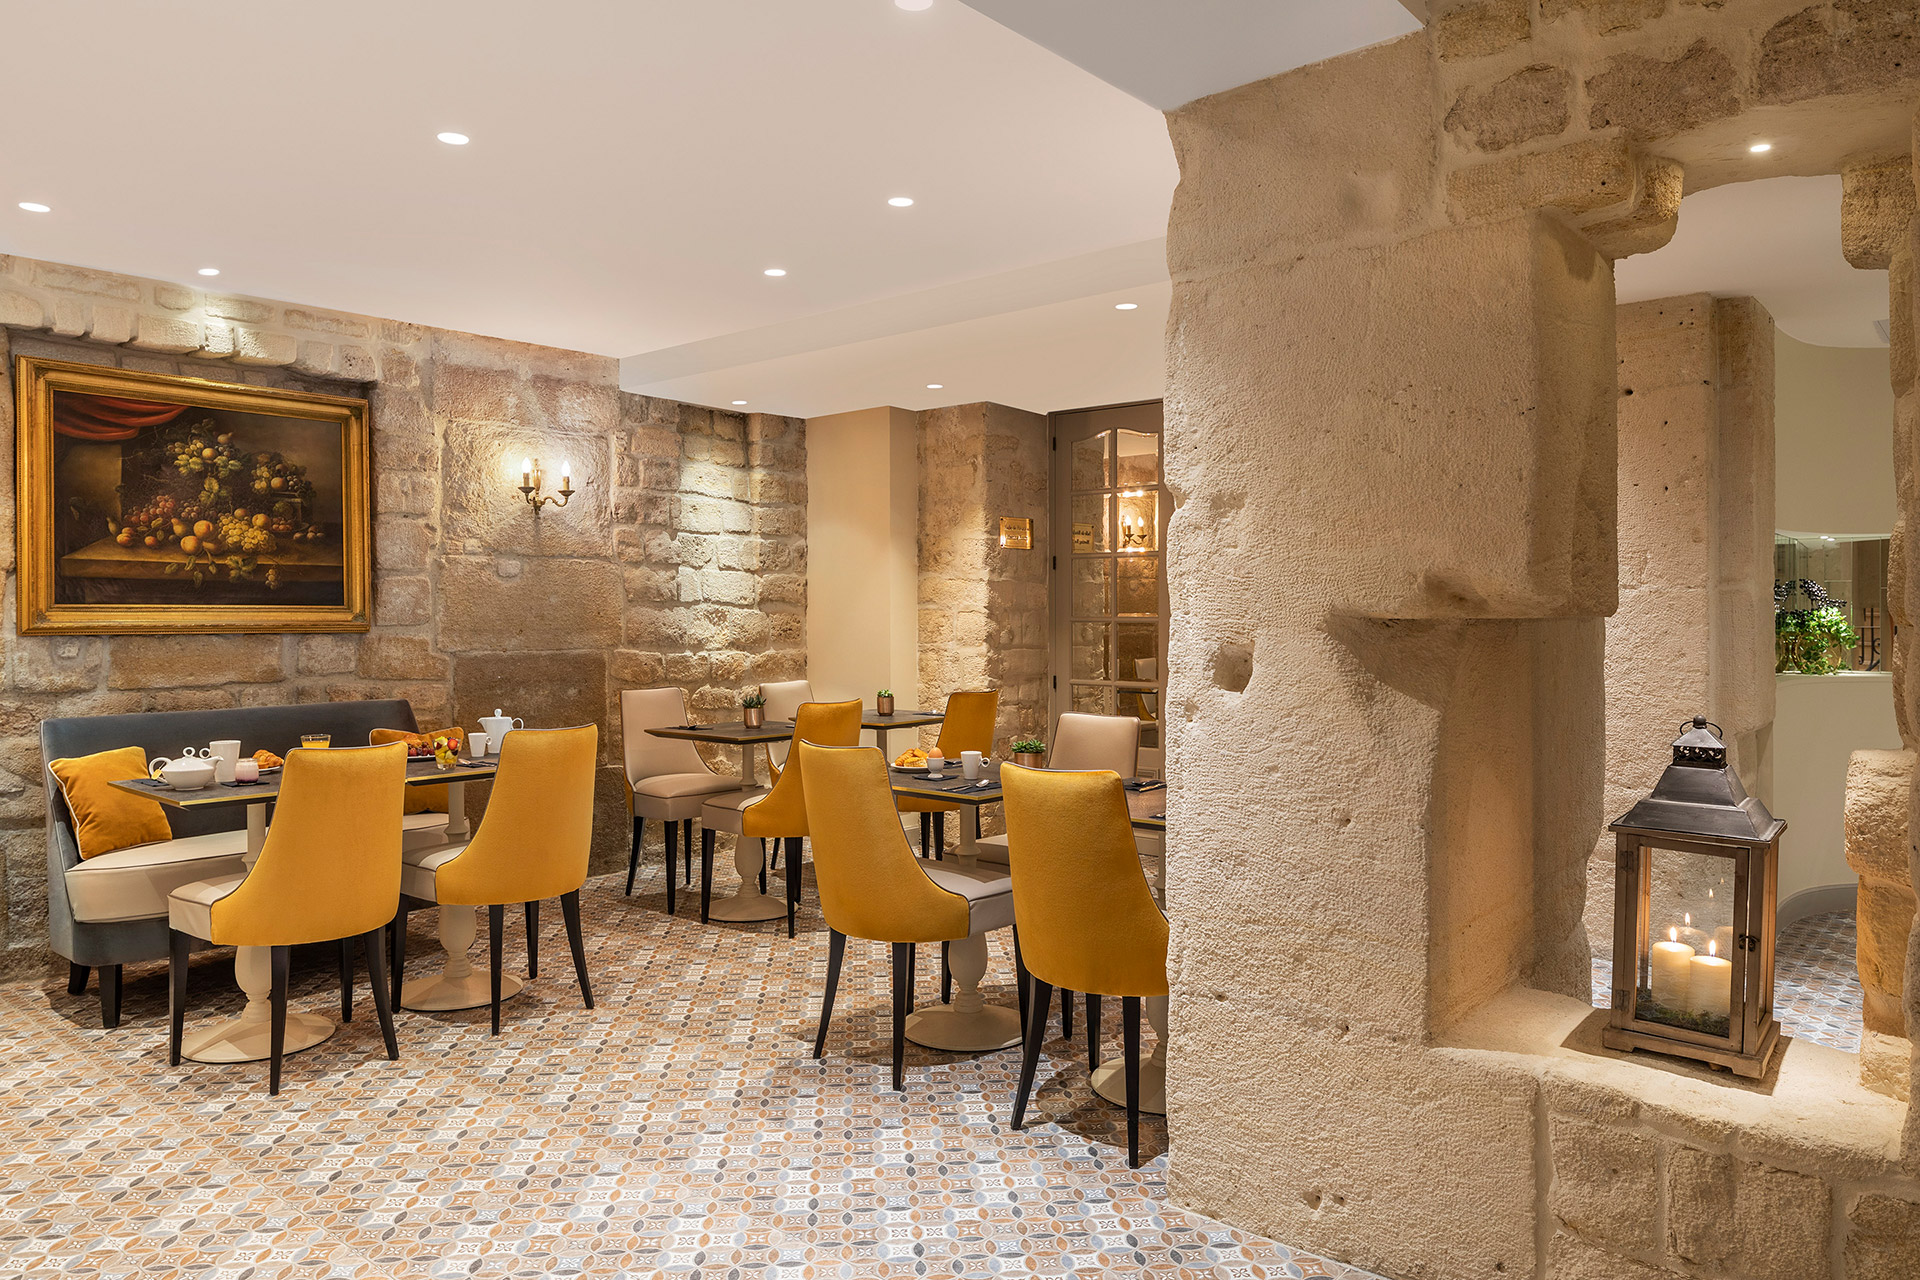 Best Western Premier Ducs de Bourgogne breakfast room